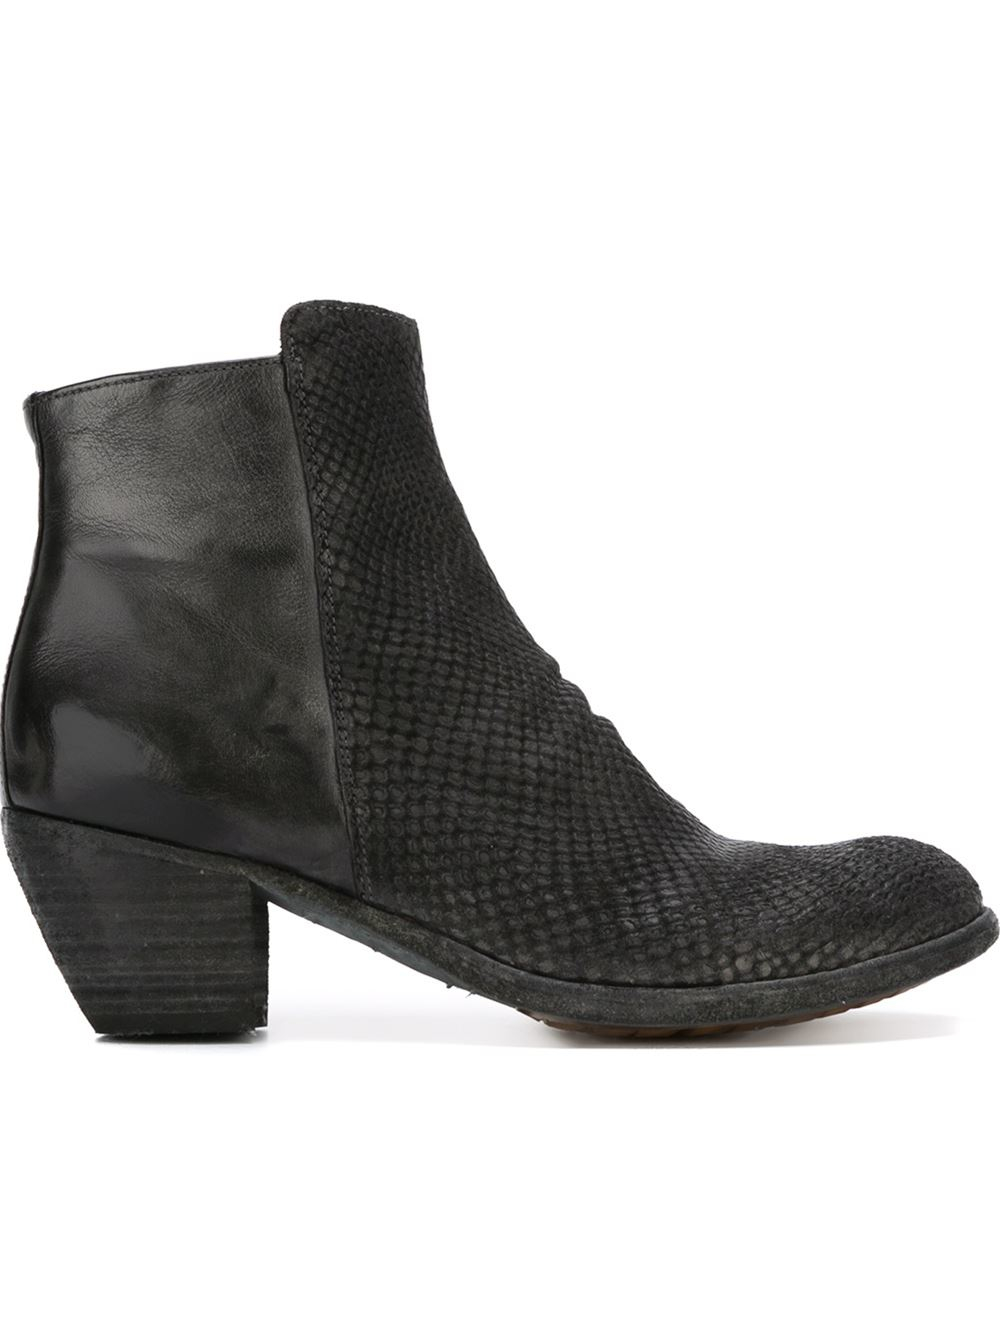 Lastest Officine Creative Womenu2019s Laceless Mid Boot | Www.teexe.com